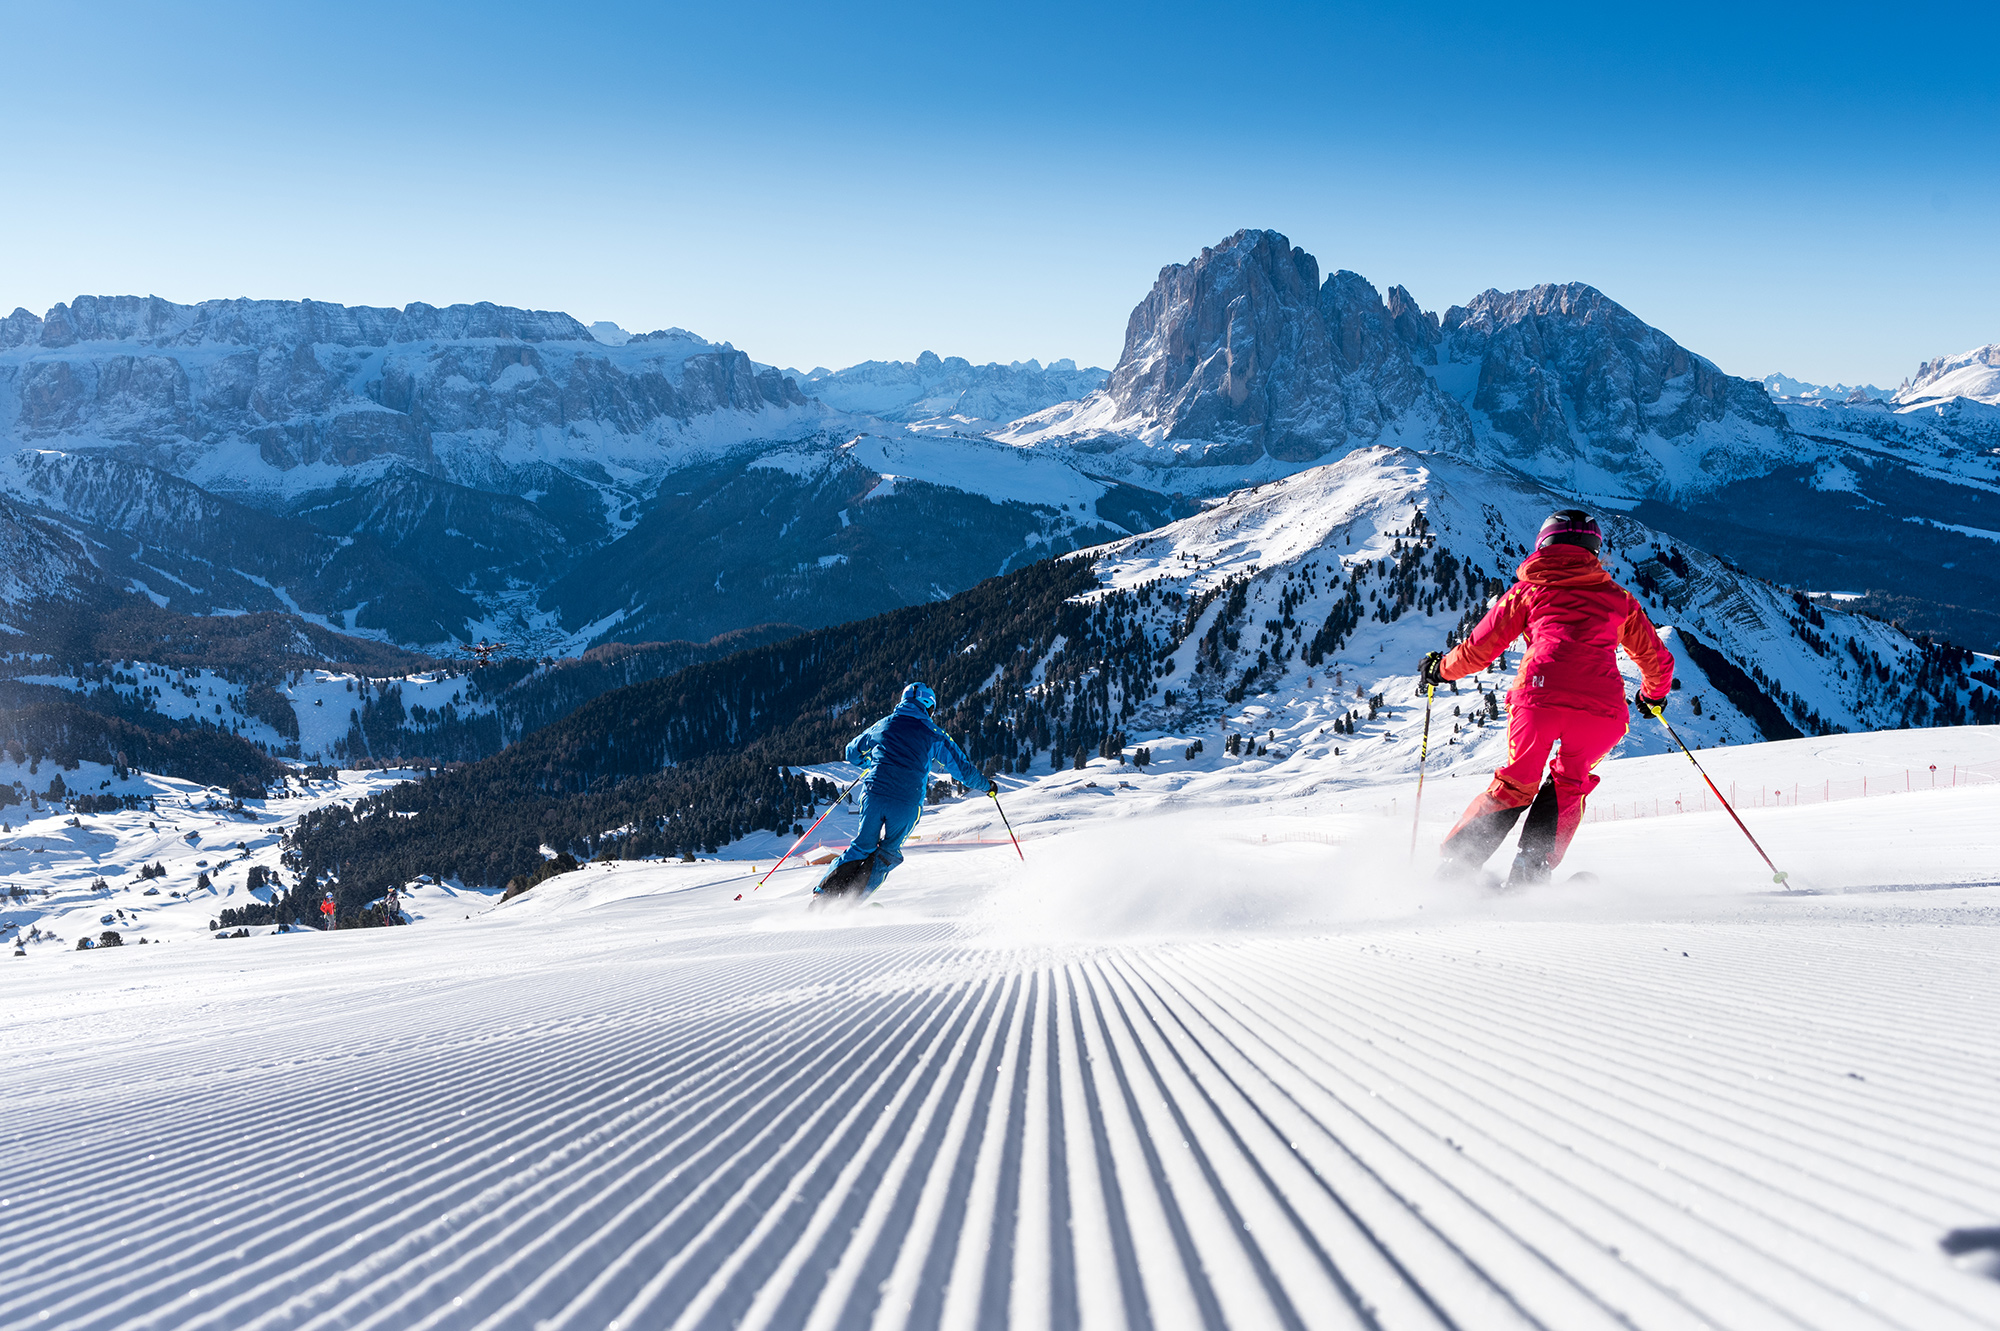 two skiers enjoy a perfectly groomed blue piste in val gardena